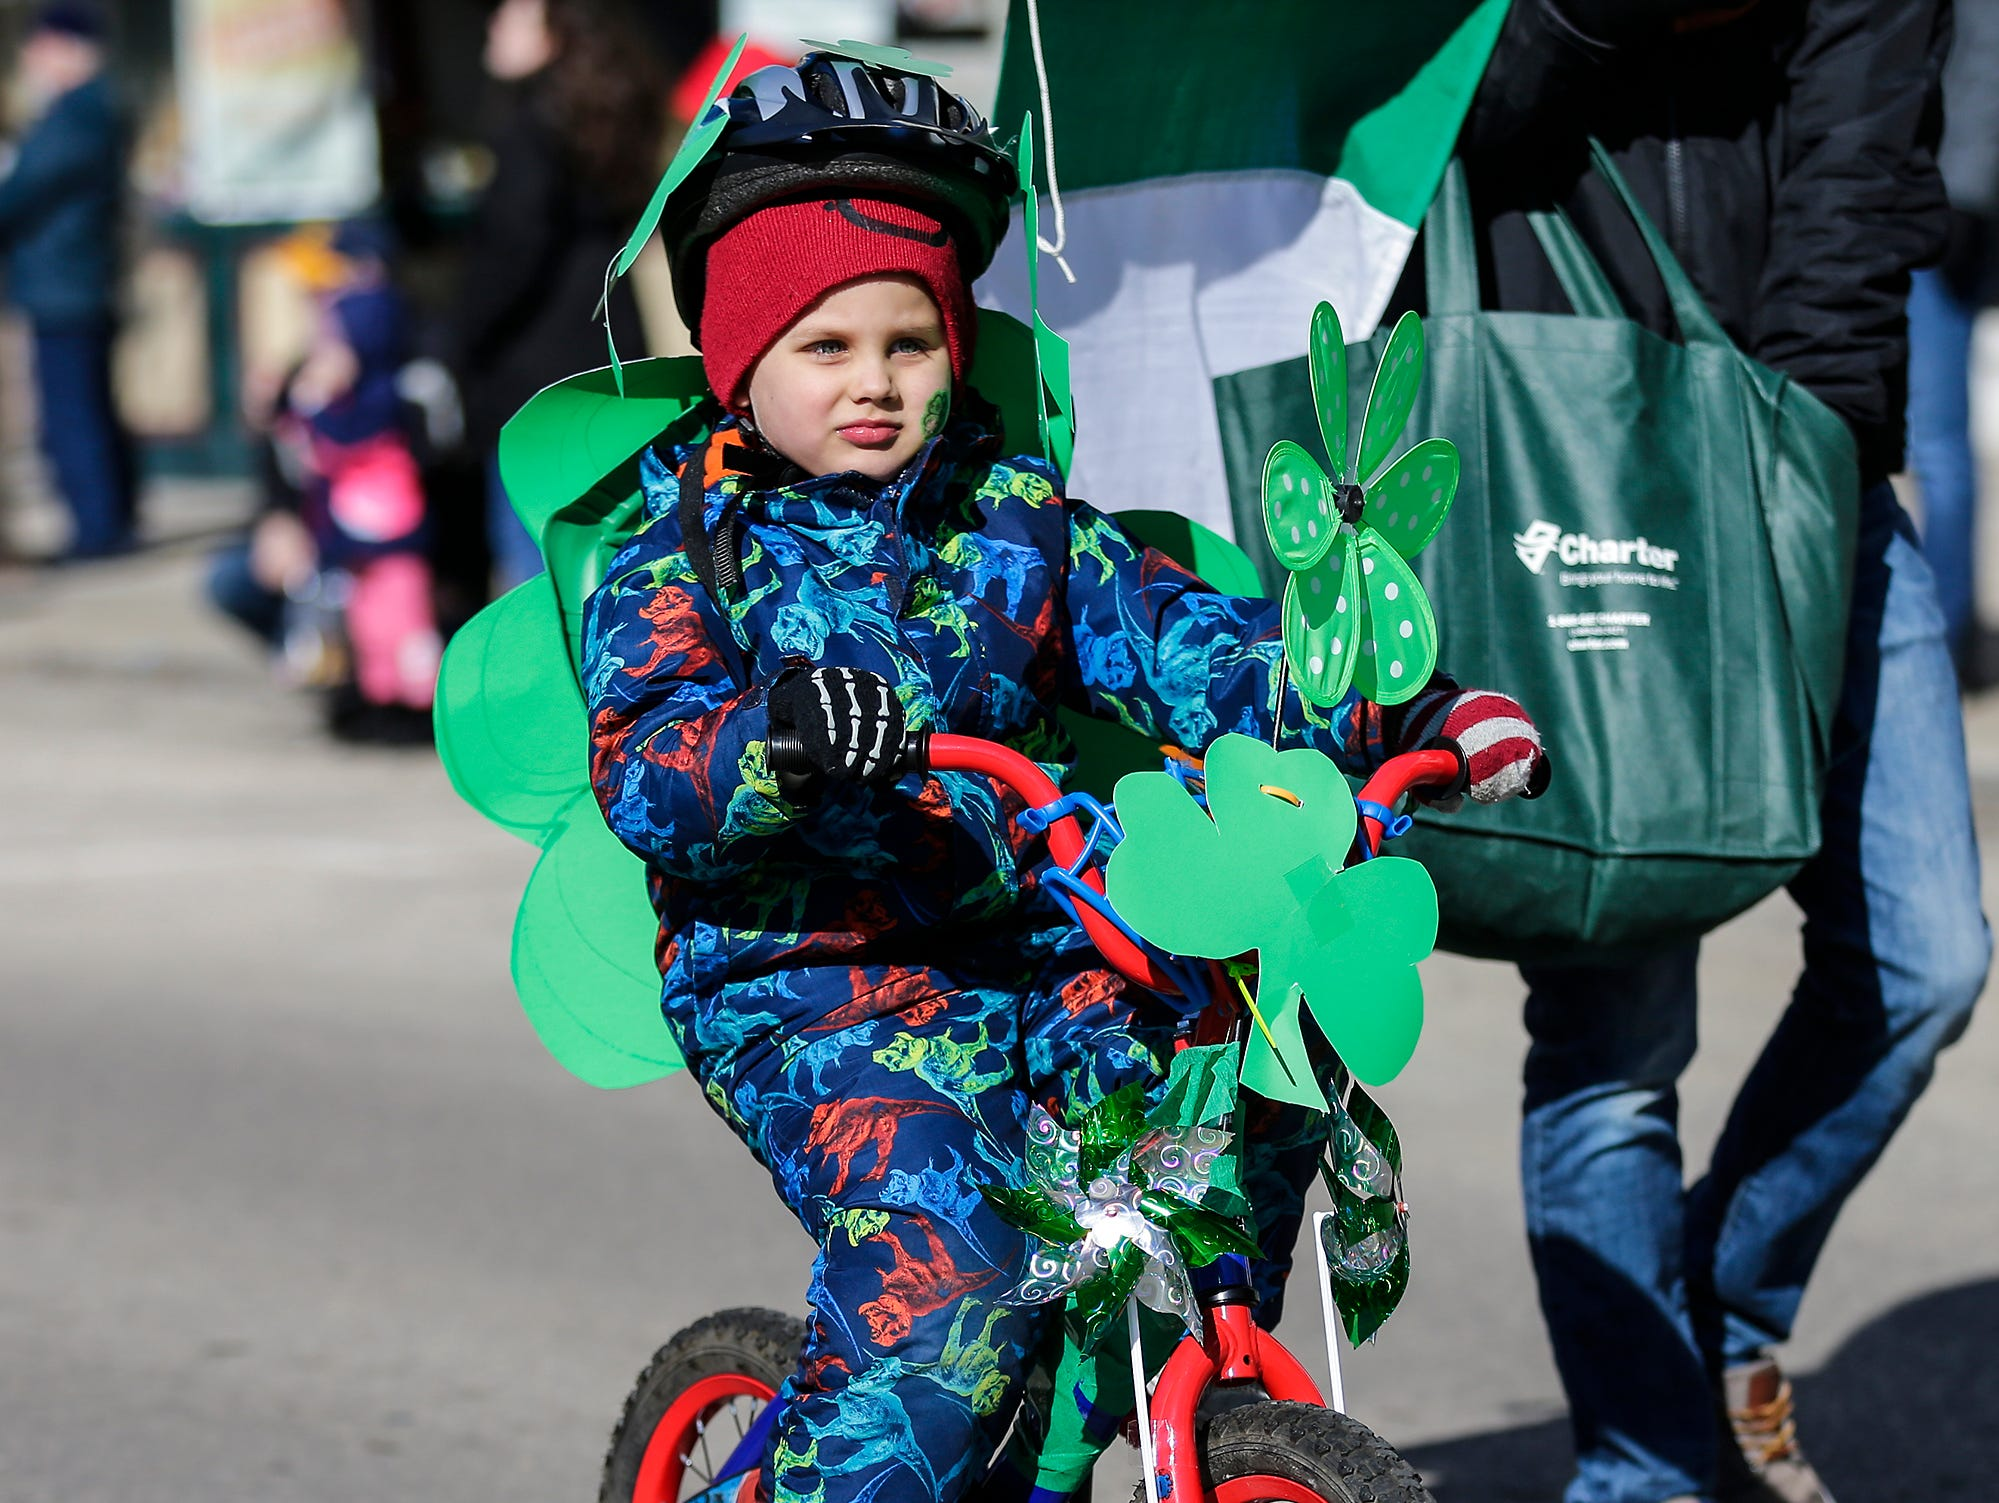 Jackson O'Hearn rides a bike in the City of Fond du Lac St. Patrick's Day Parade Saturday, March 16, 2019 on Main Street in downtown Fond du Lac. Hundreds of people lined the street to watch over 50 parade participants. Doug Raflik/USA TODAY NETWORK-Wisconsin